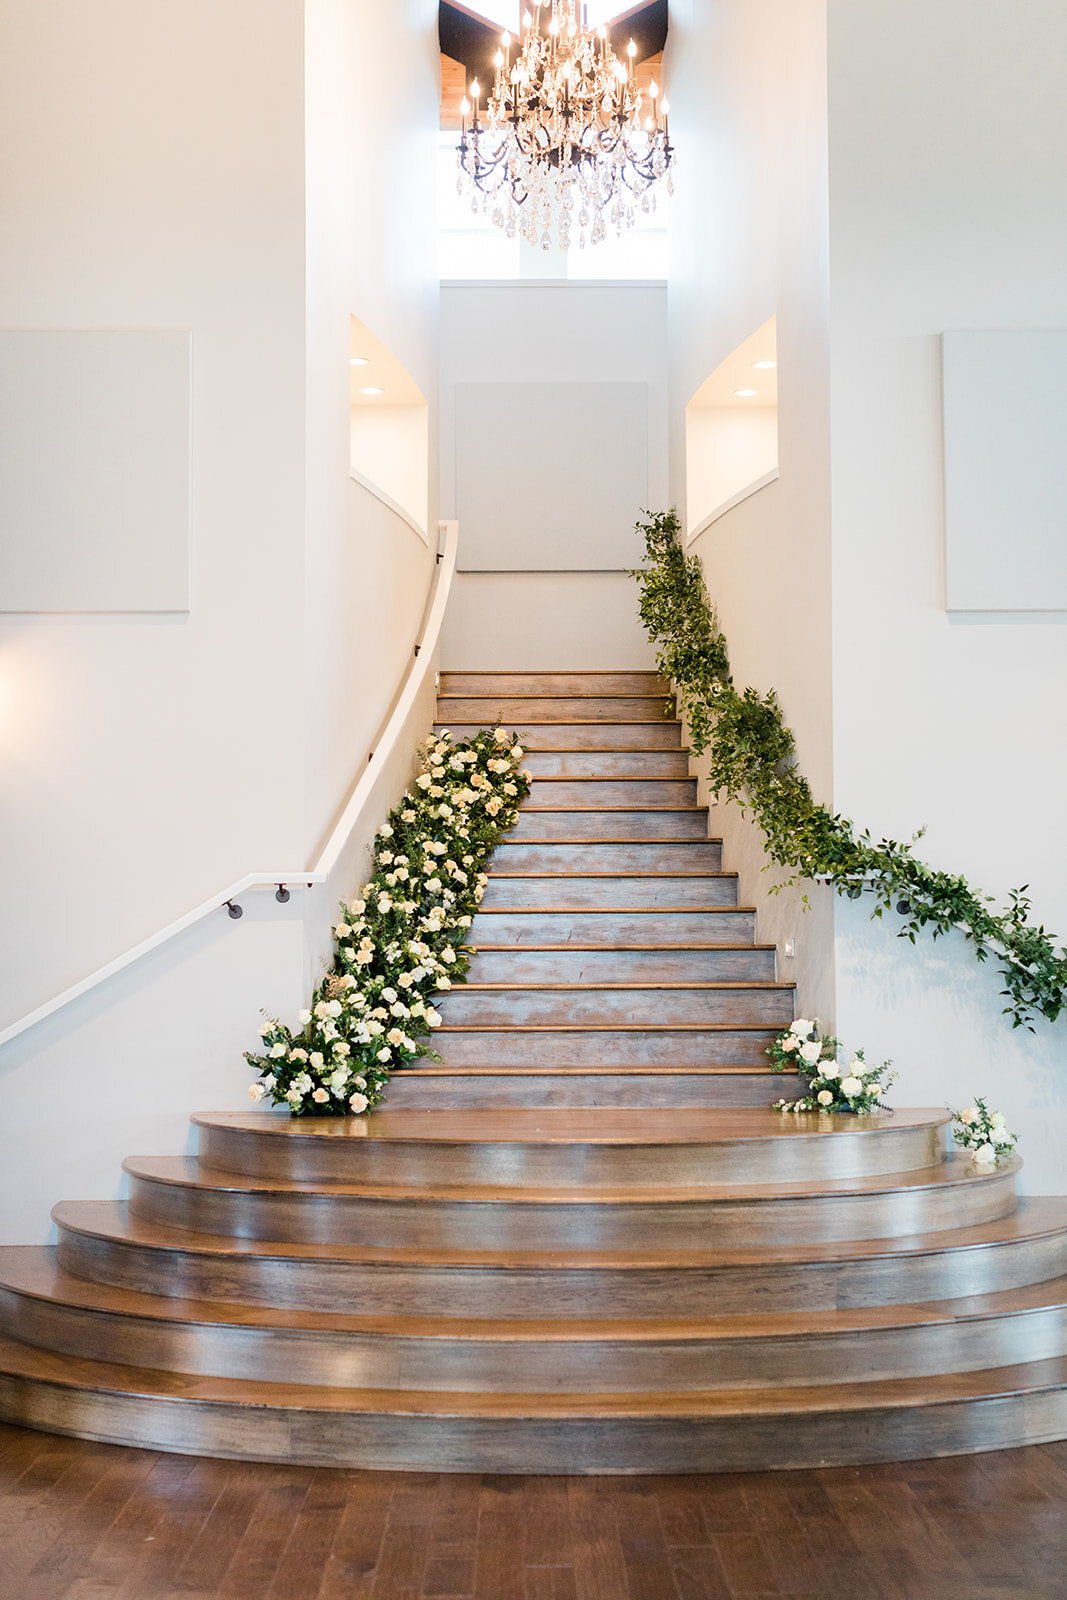 stair-case-floral-install